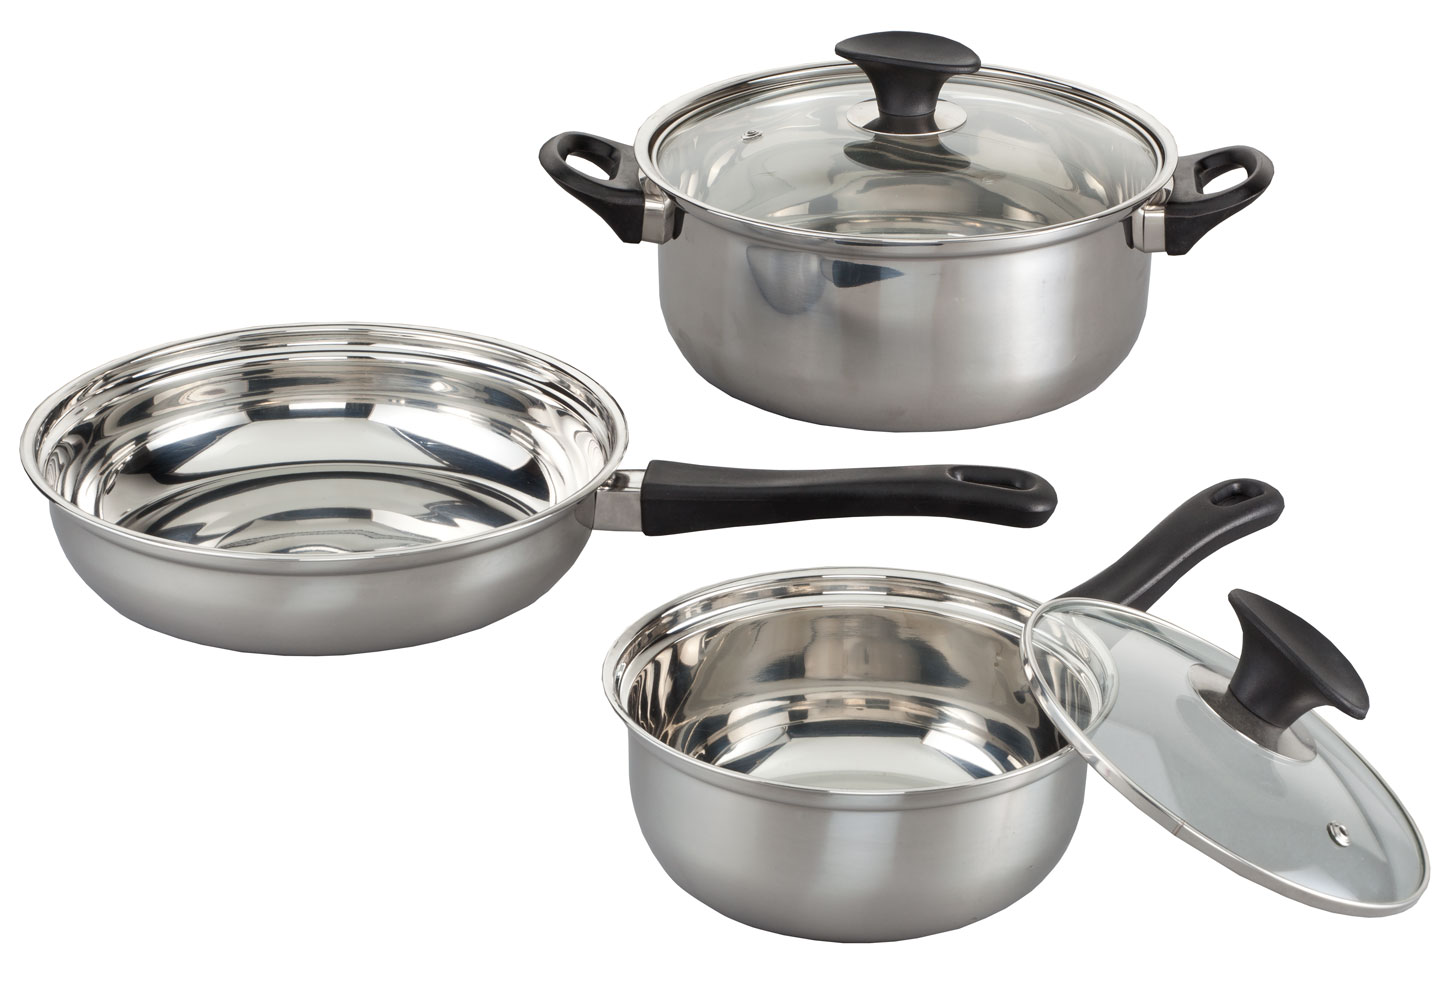 5 Pc. Stainless Steel Cookware Set by Miles Kimball